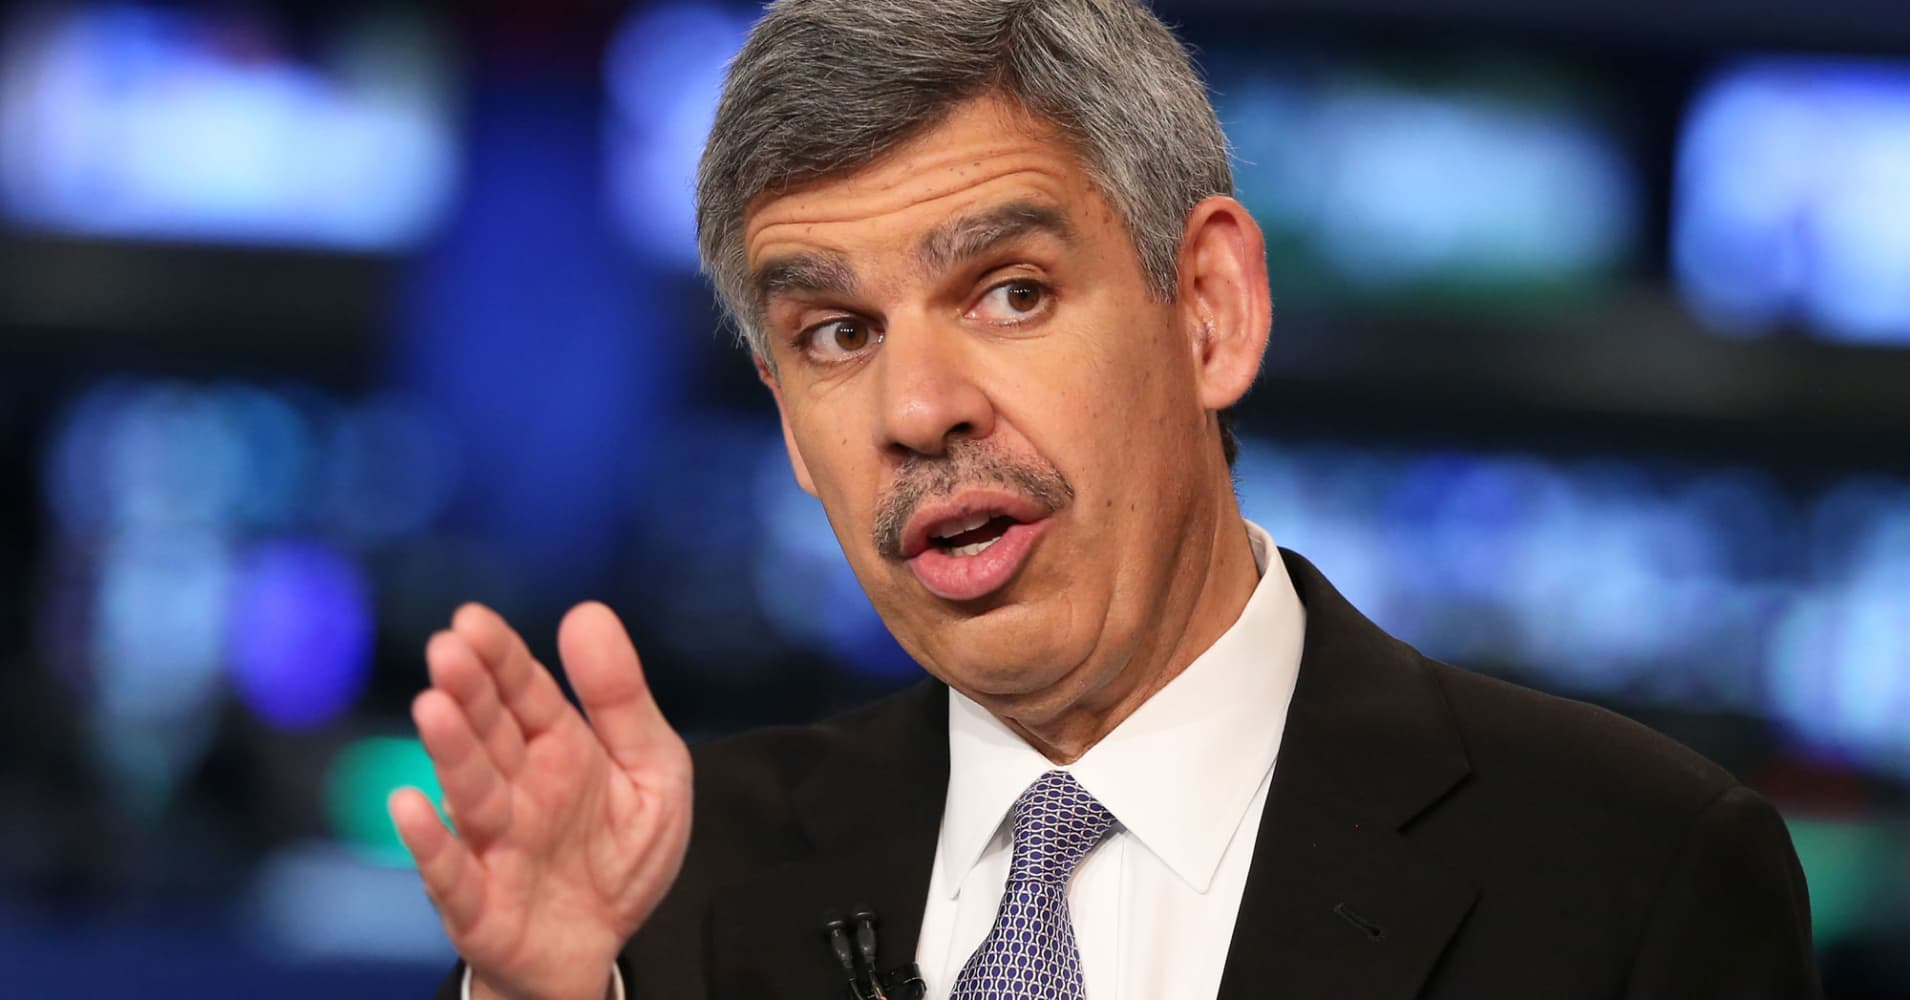 Mohamed El-Erian isn't concerned about a global trade war but sees another major risk for the market